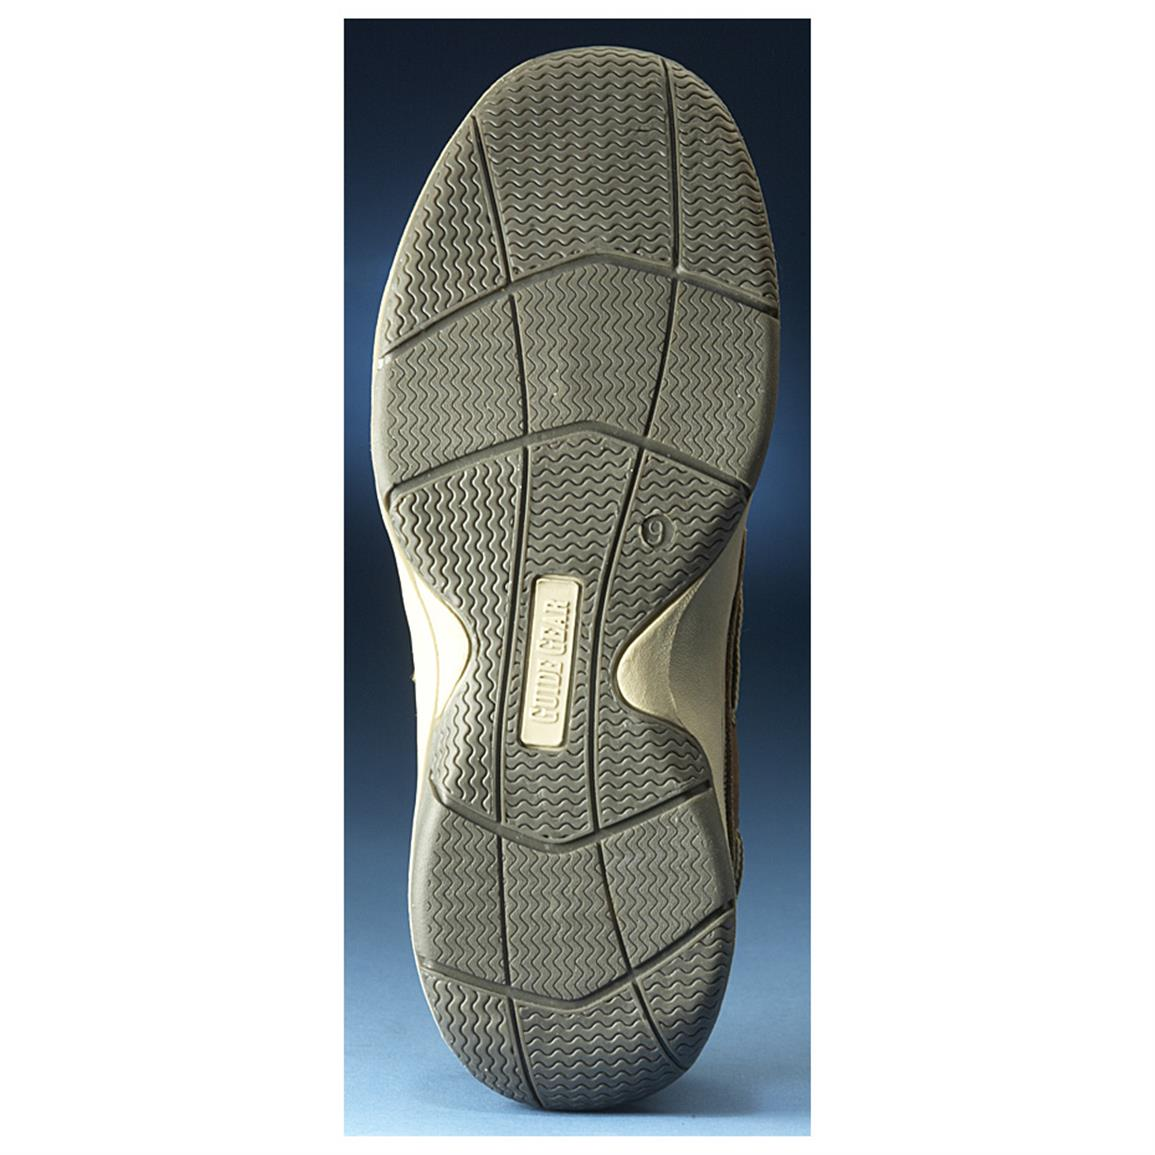 Siped outsole grips wet surfaces